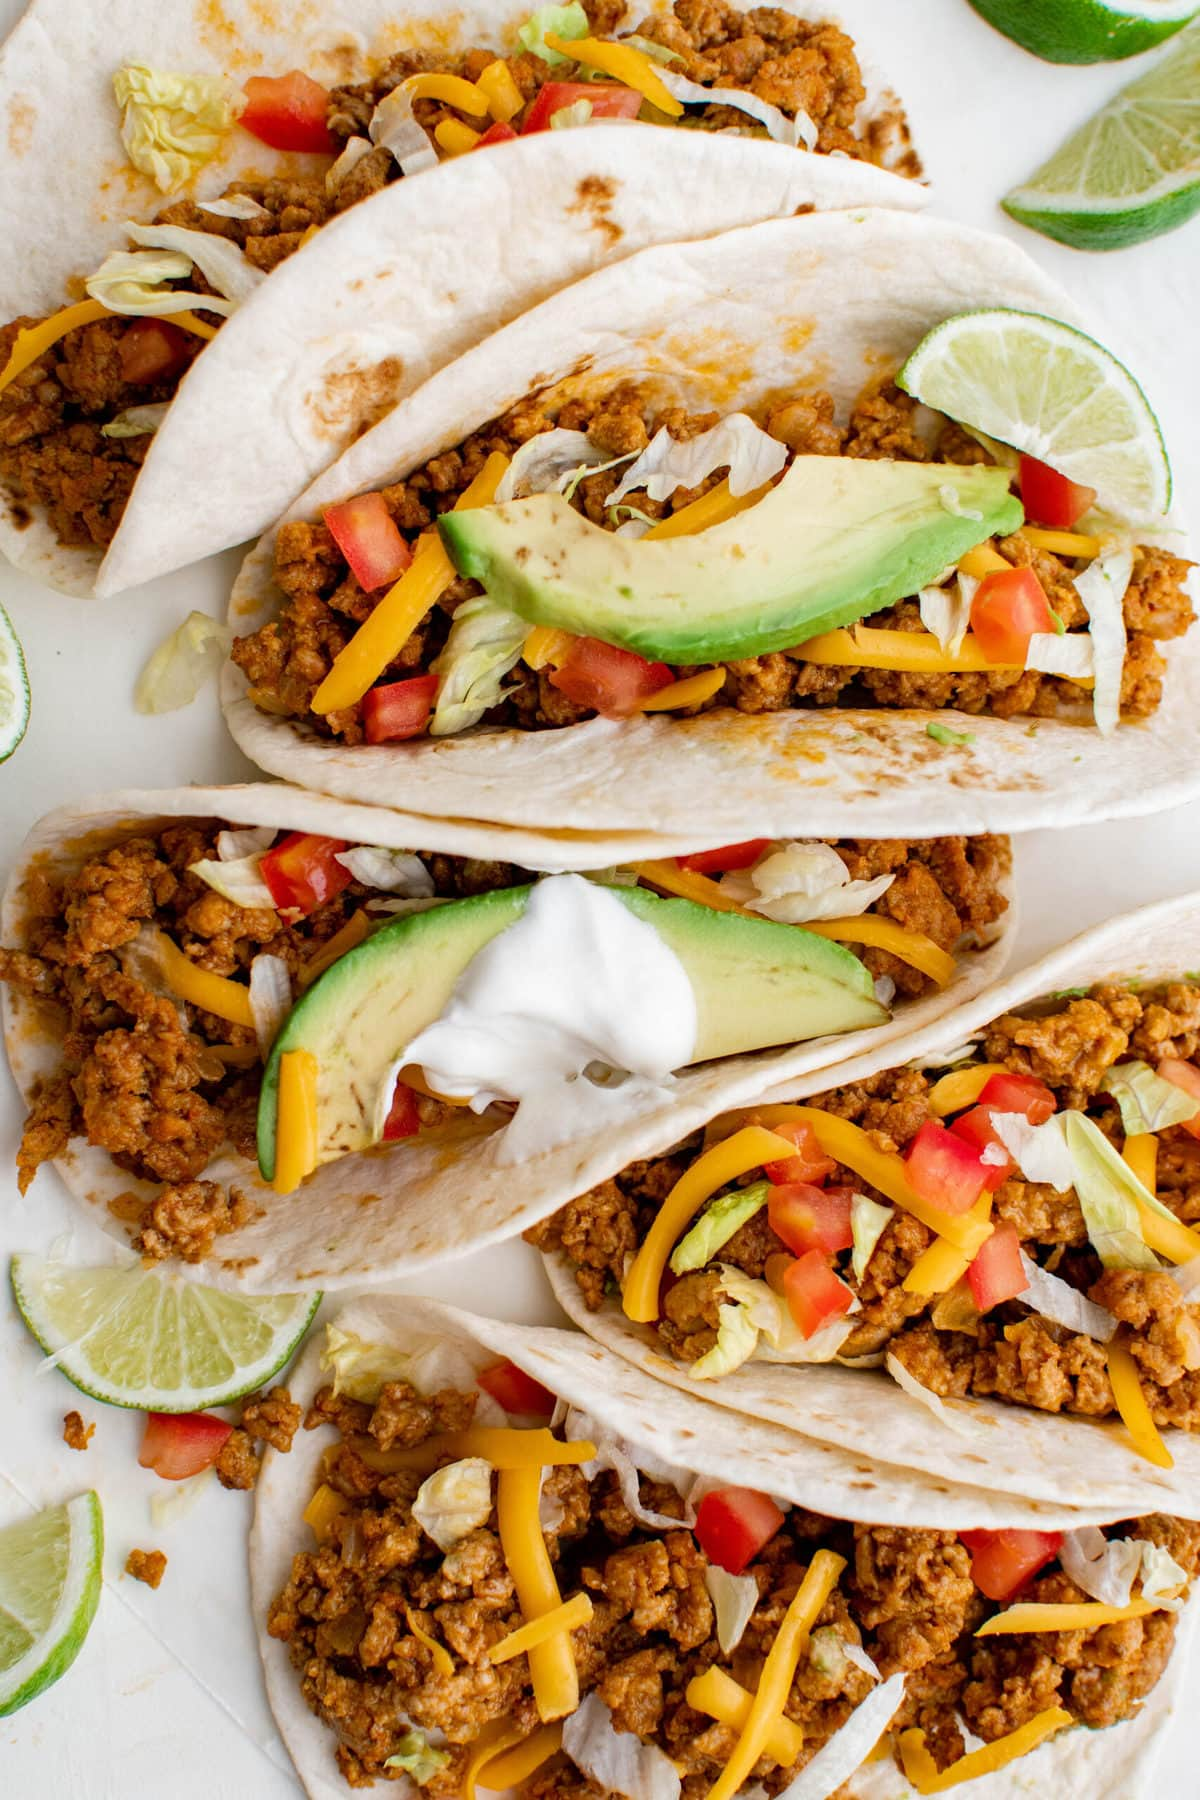 flour tortillas stuffed with ground turkey, cheese, lettuce, tomatoes, limes